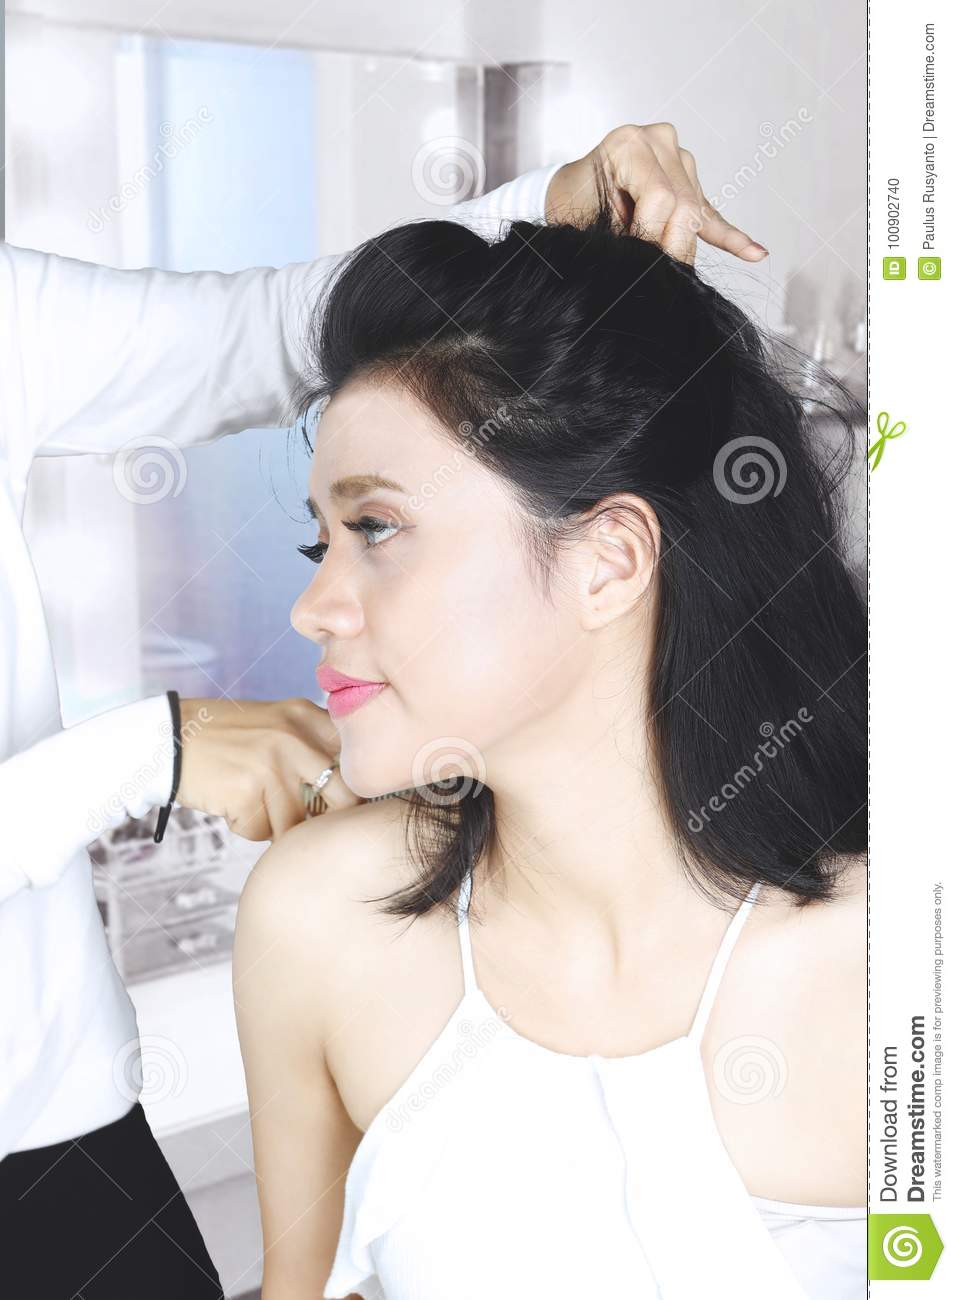 Woman Getting A New Haircut In The Salon Stock Photo Image Of